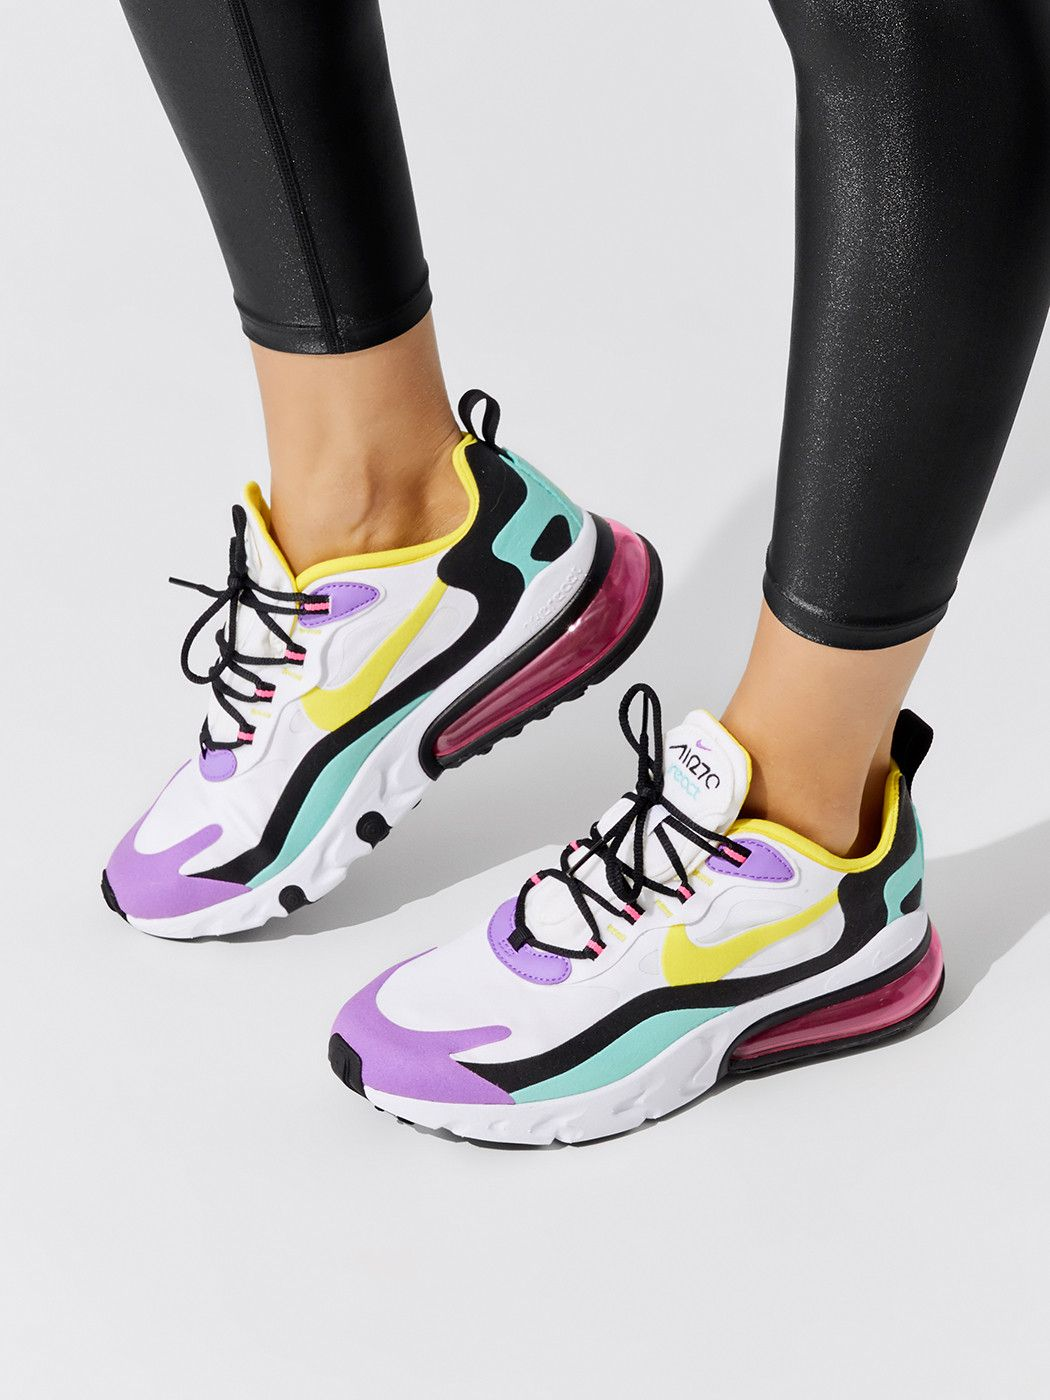 Air Max 270 React in Whitedynamic Yellow Black Brt Violet